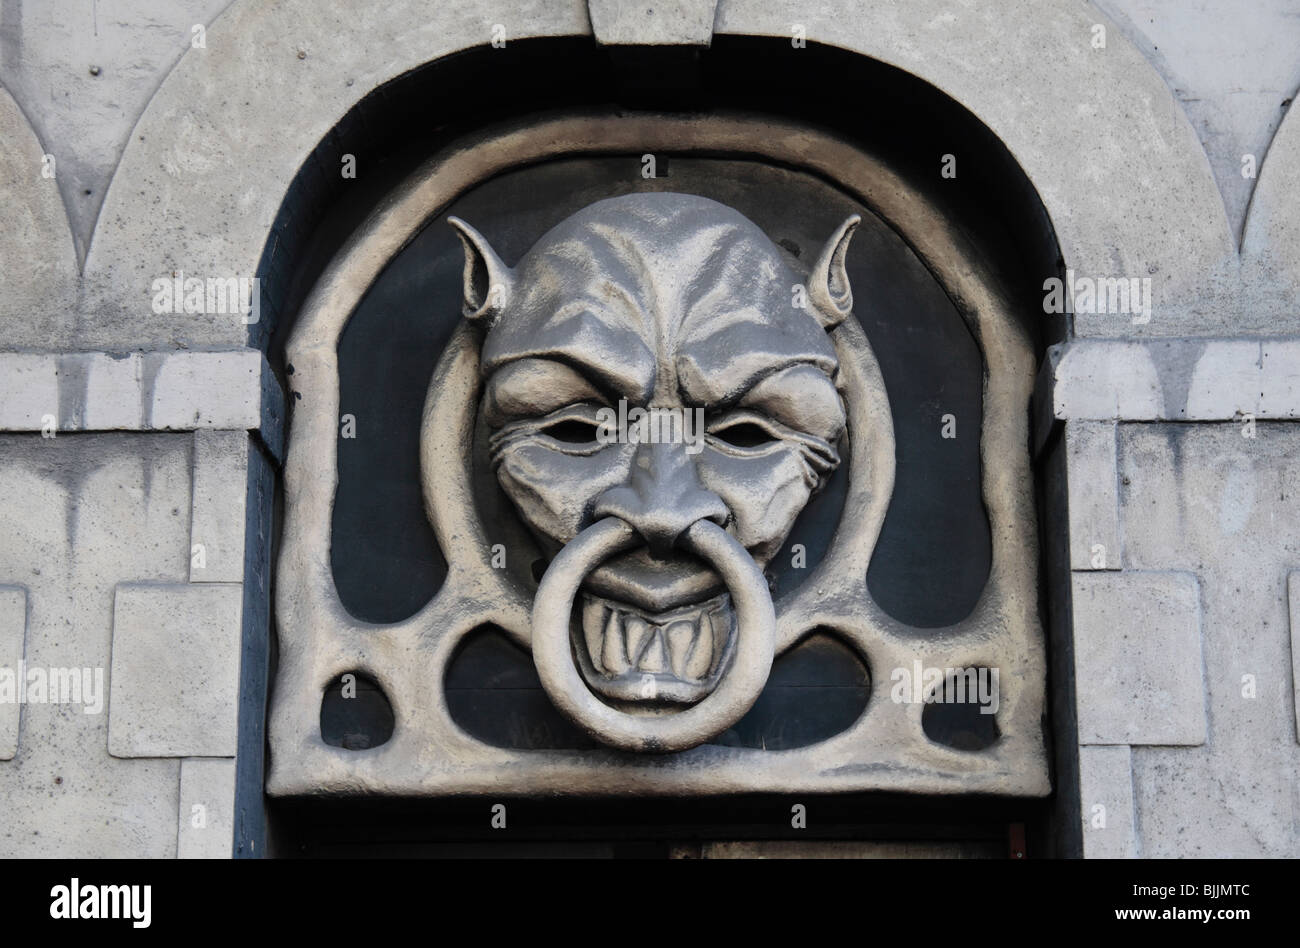 Spooky door knocker sign above the entrance to London Dungeon London UK. & Spooky door knocker sign above the entrance to London Dungeon Stock ...